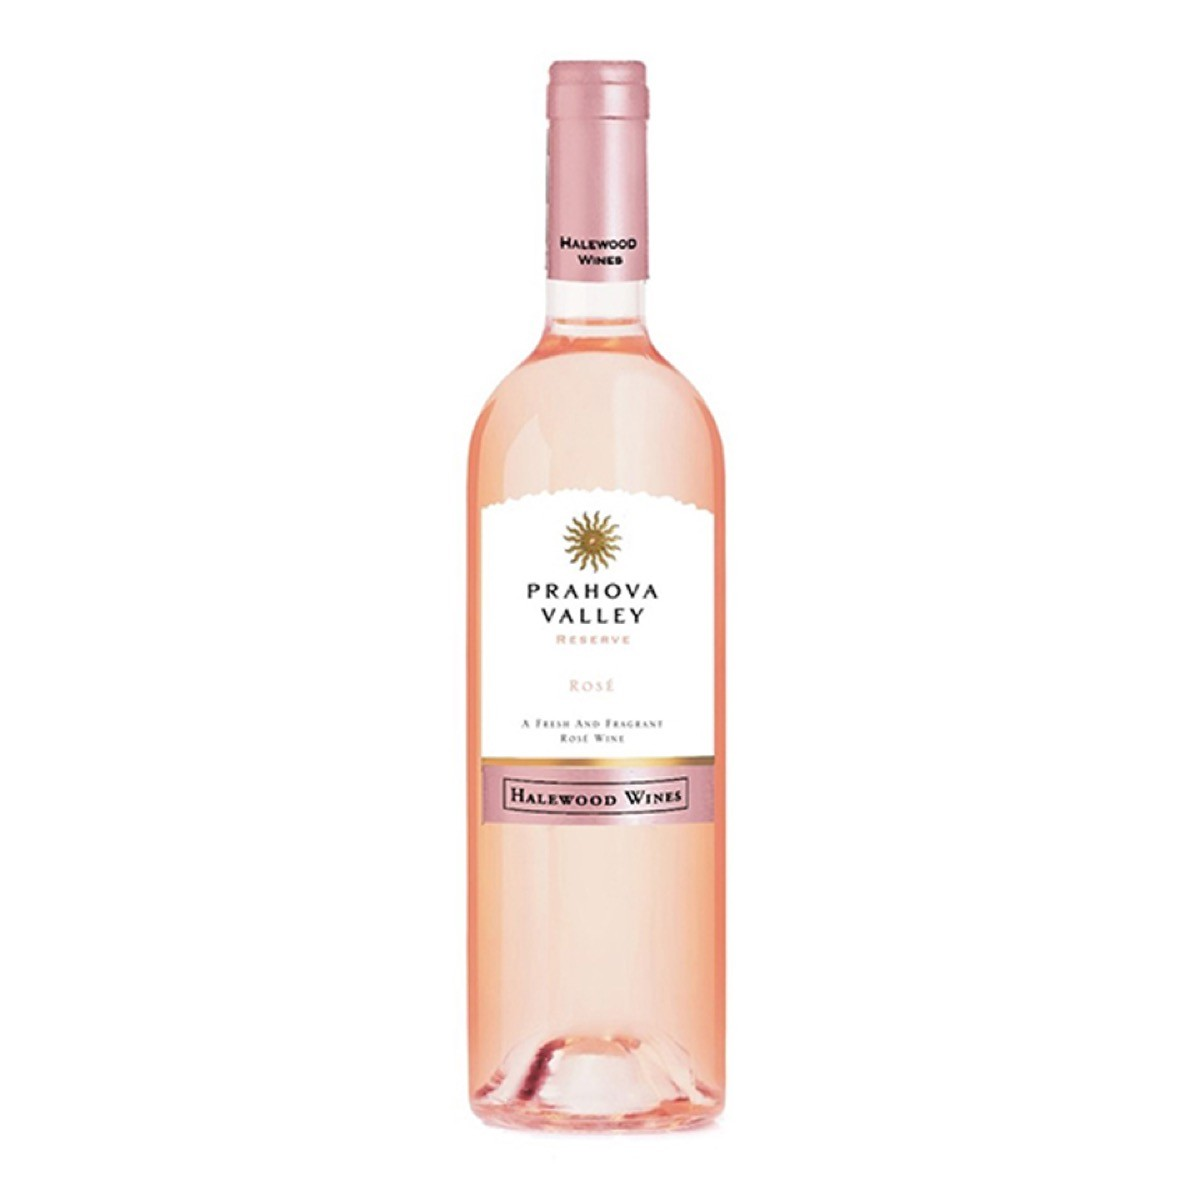 Prahova Valley Reserve Rose